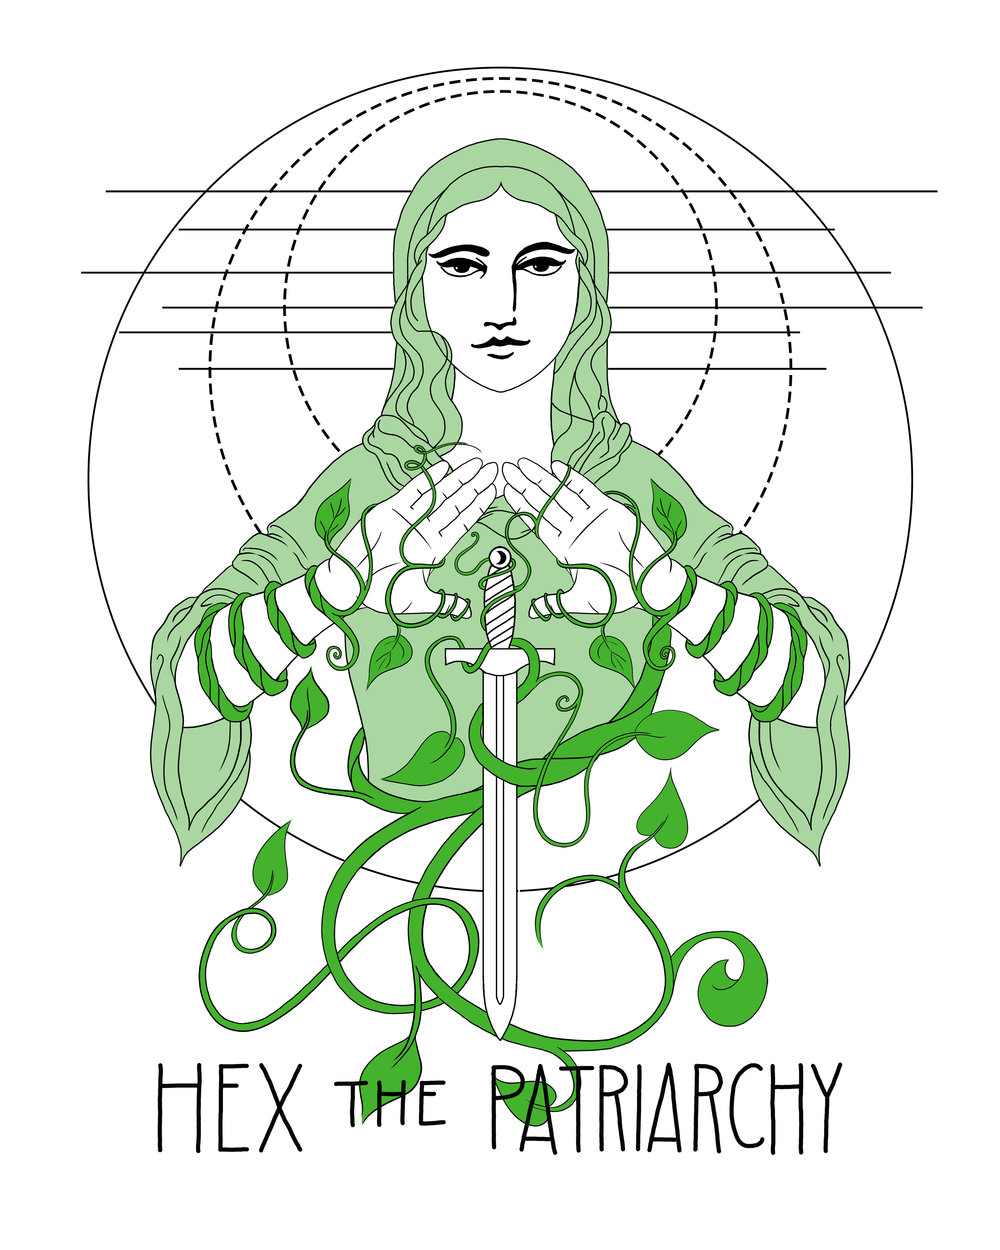 Hex the Patriarchy